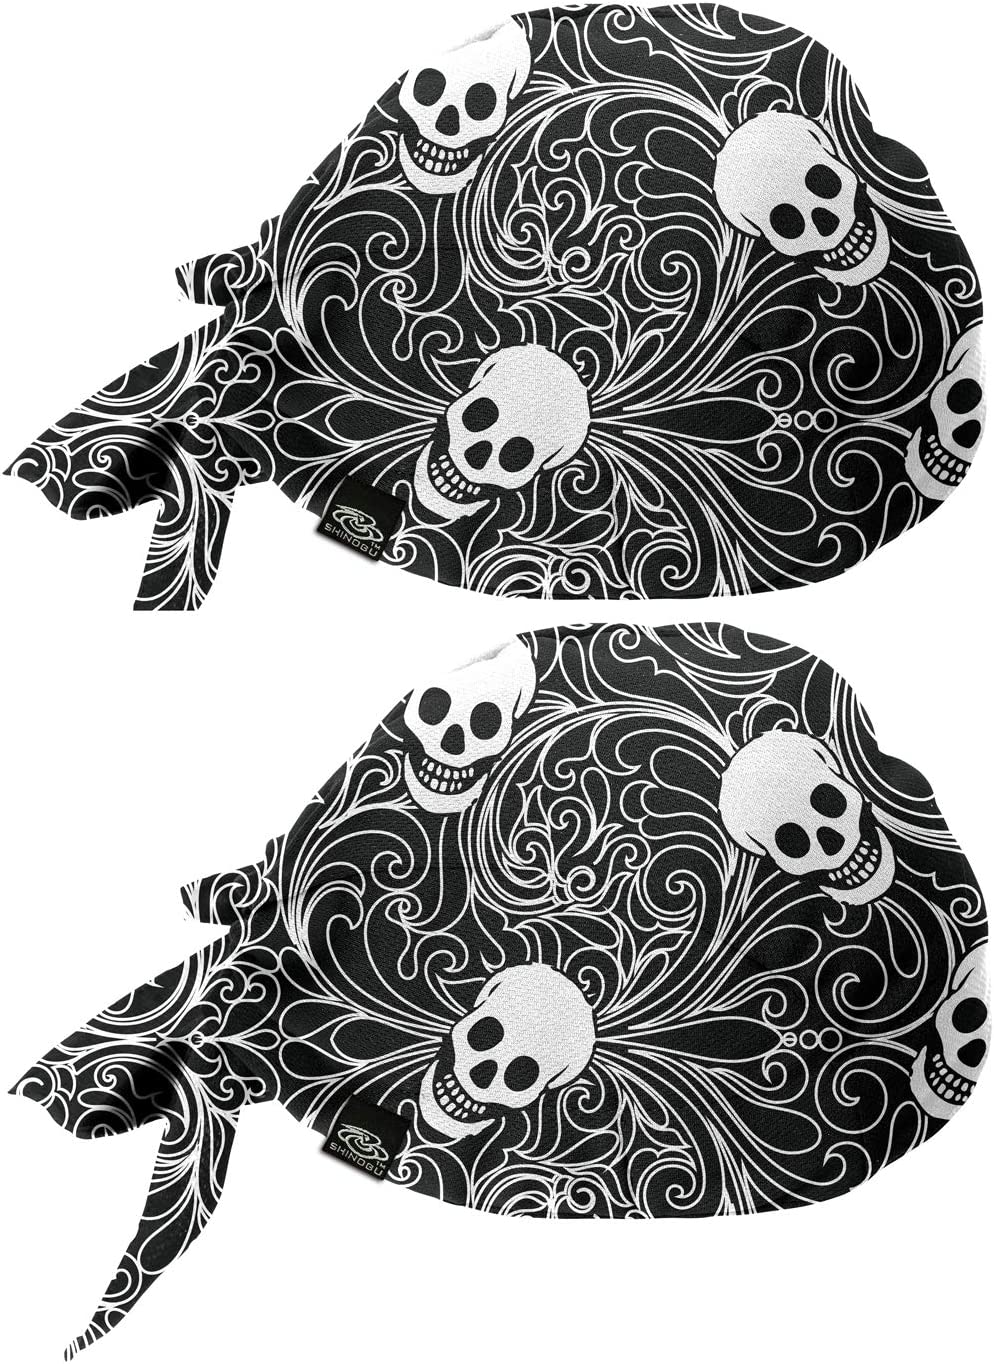 Skull Black SR-097 Bandana Type Shinobu Riders 2-Pack Coolmax Quick Drying Helmet Skull Cap Beanie